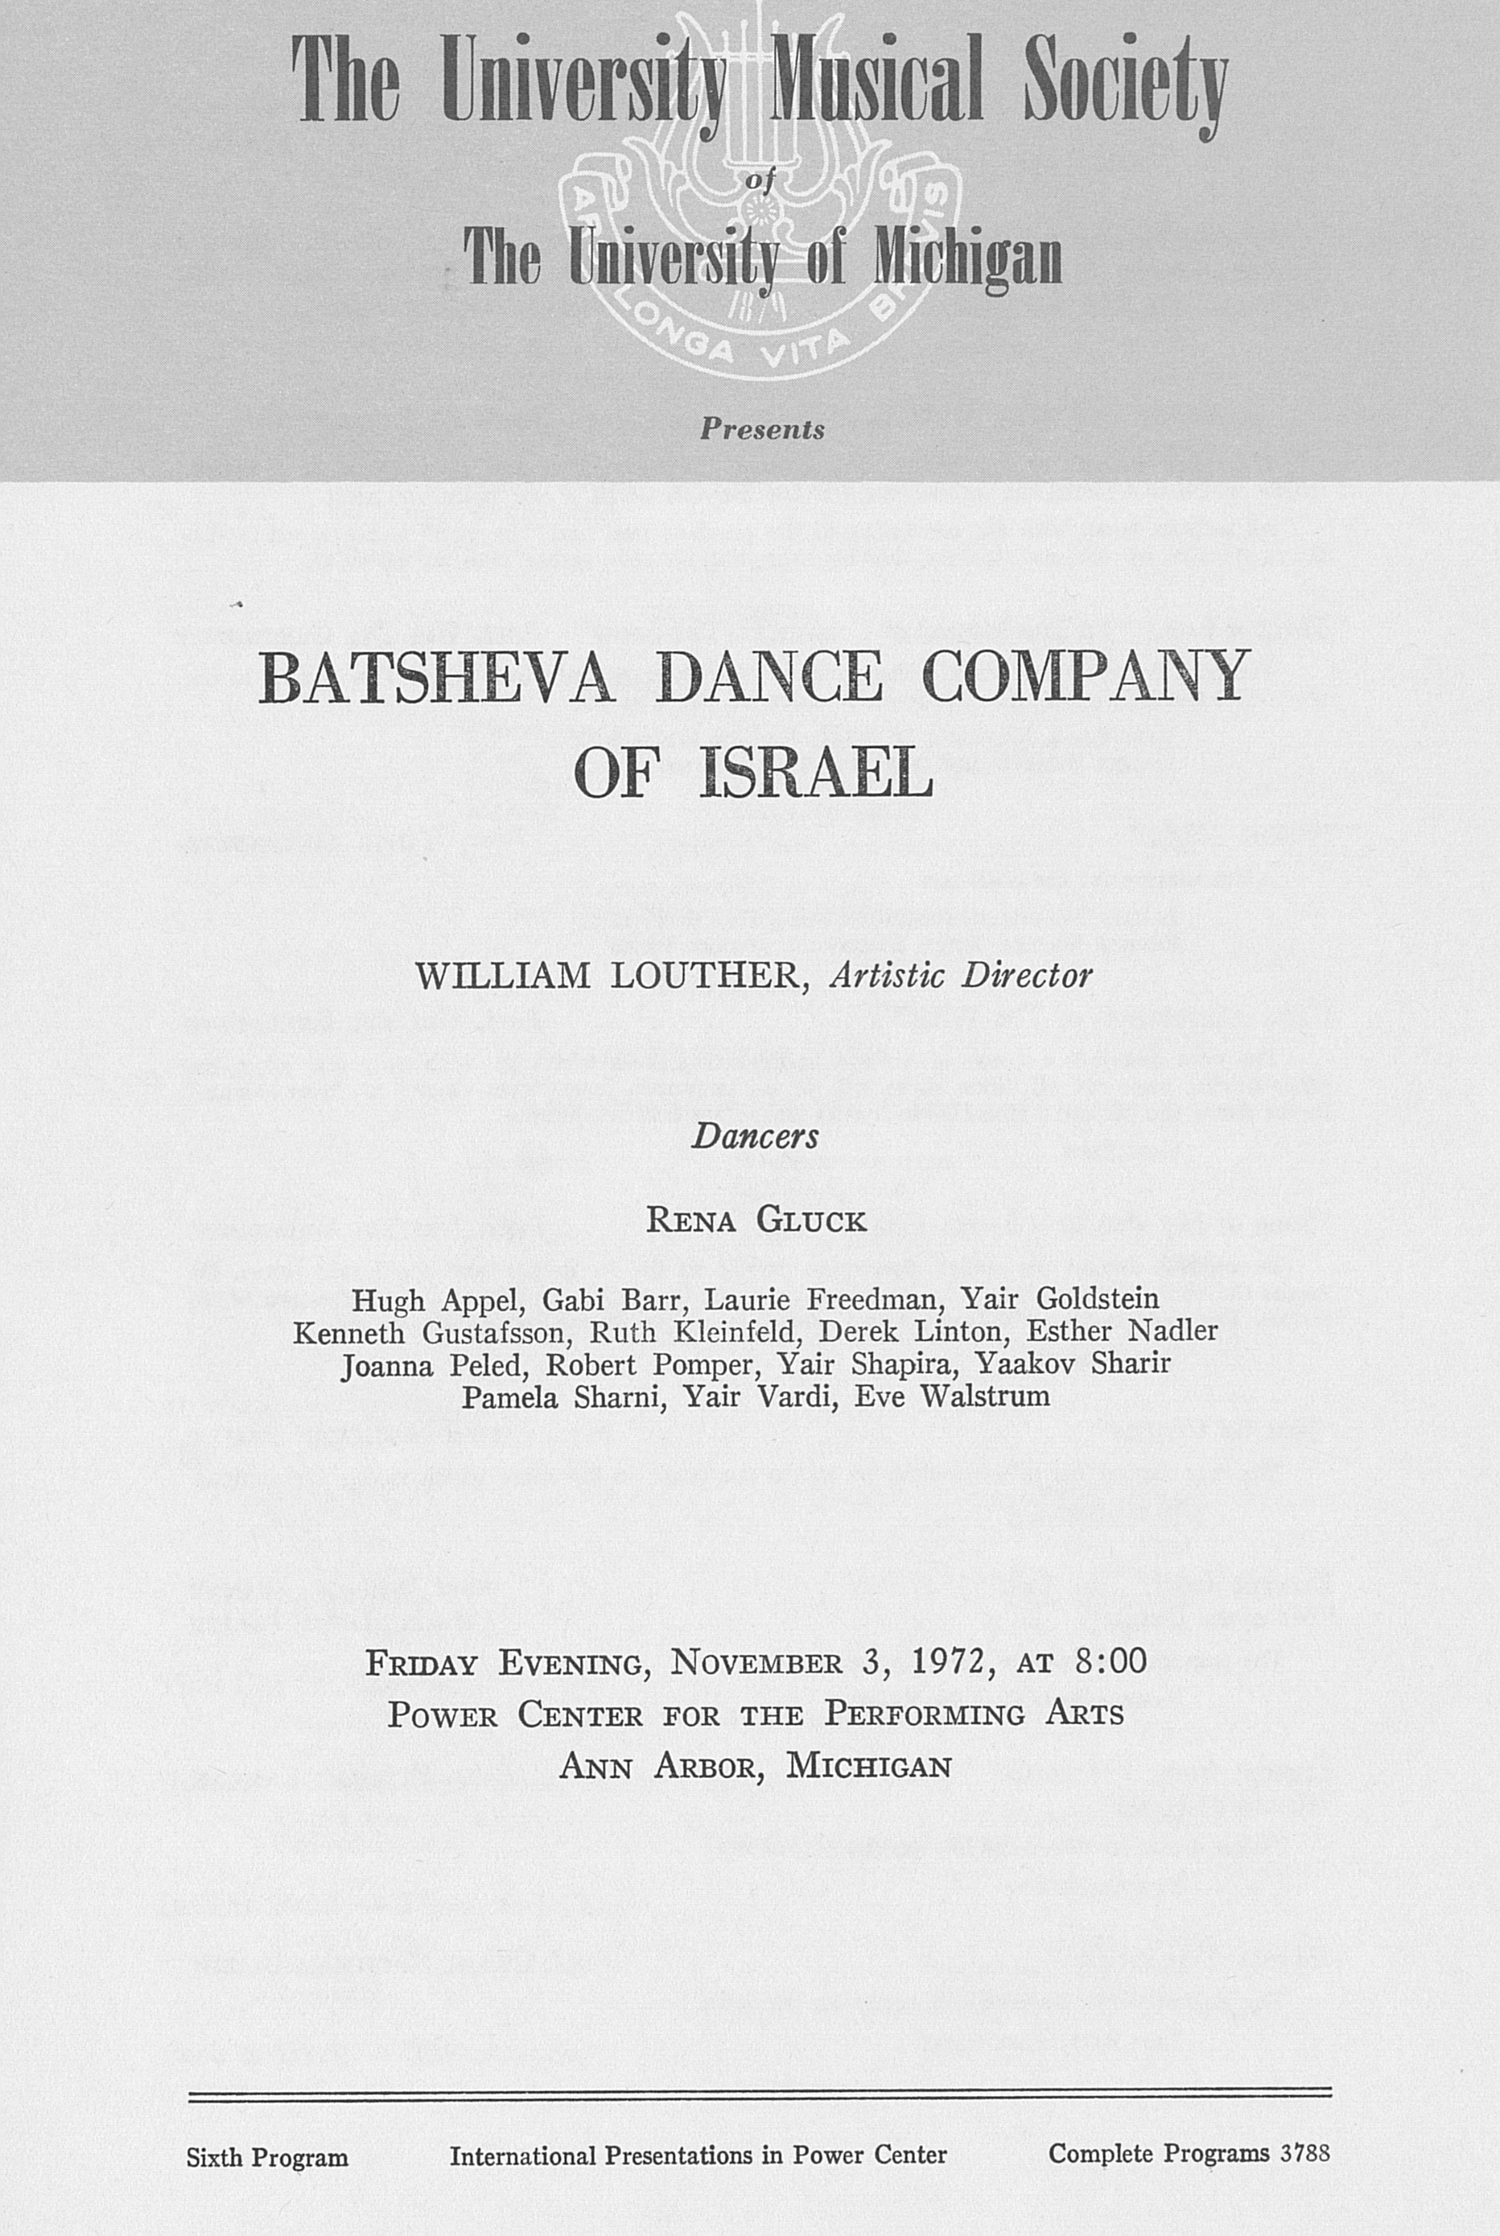 UMS Concert Program, November 3, 1972: Batsheva Dance Company Of Israel -- William Louther image